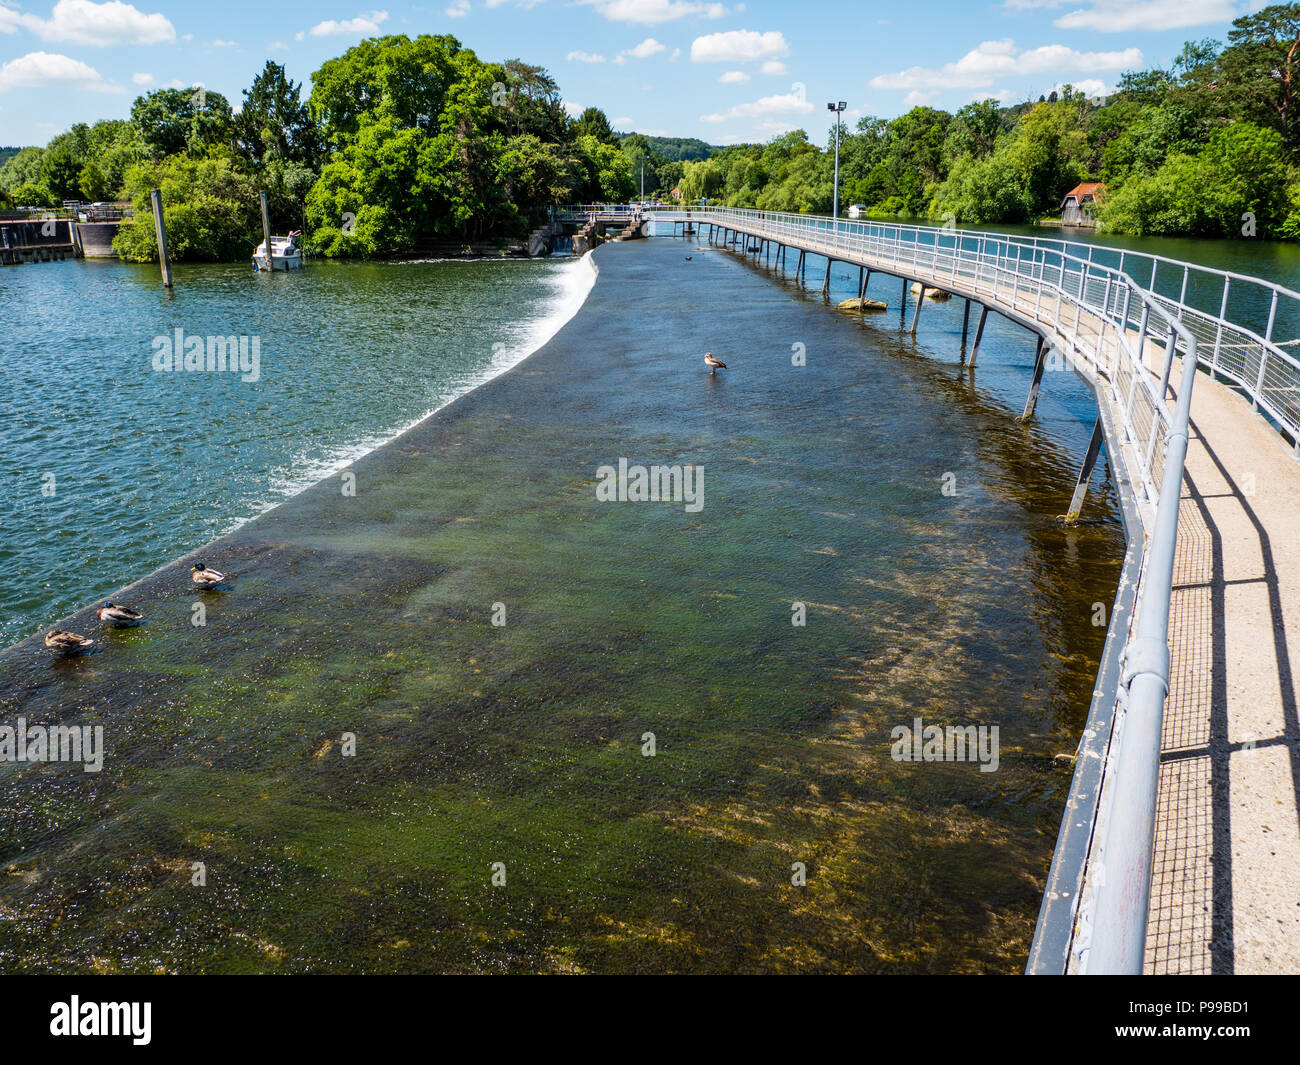 Walkway, Hambleden Lock and Weir, River Thames, Berkshire, England, UK, GB. - Stock Image